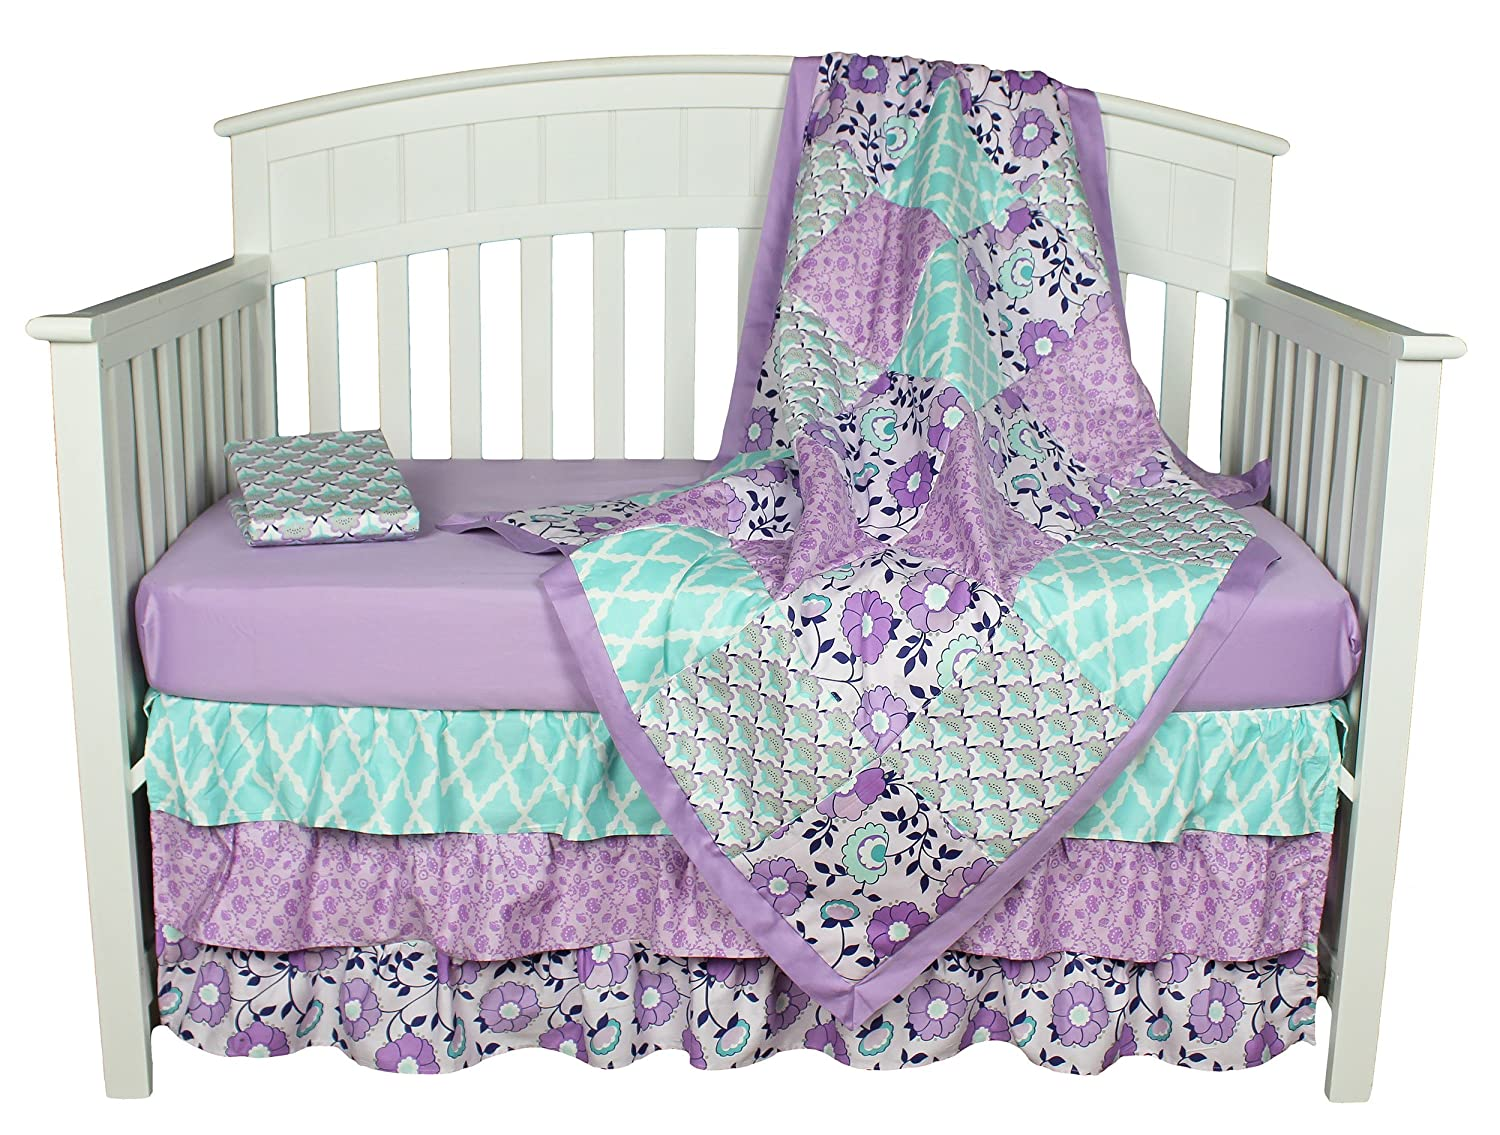 Purple Baby Bedding, Zoe 4-In-1 Crib Bedding Set by The Peanut Shell by The Peanut Shell   B00WZMKTVQ